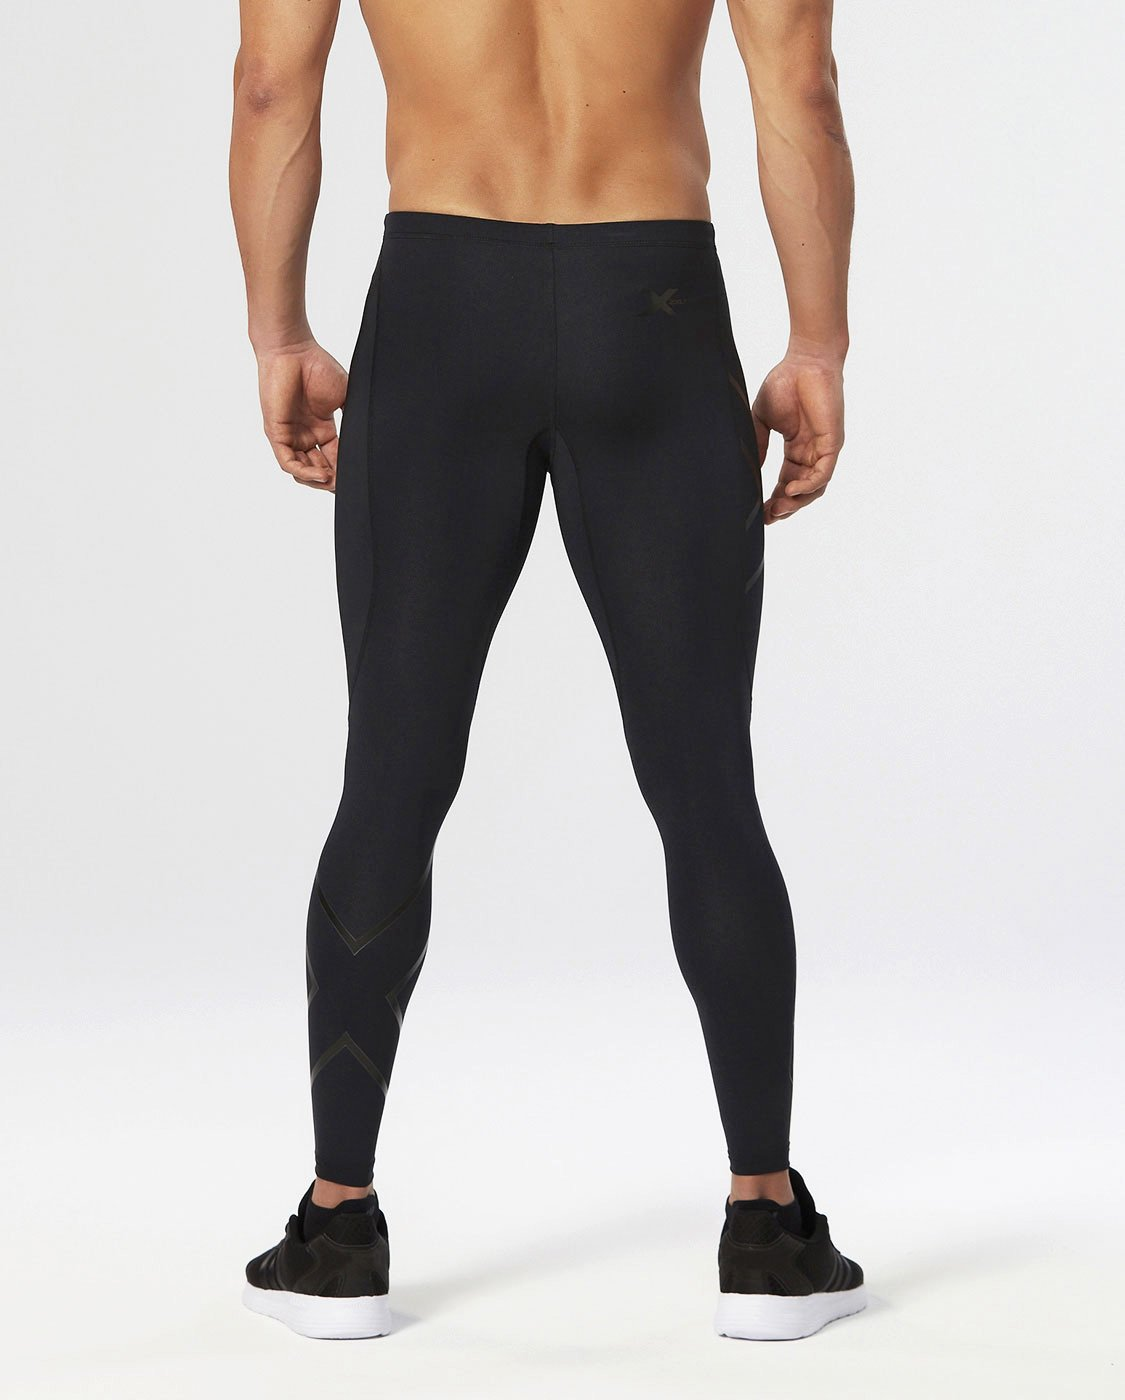 2XU Men's Recovery Compression Tights, Black/Black, Small Tall by 2XU (Image #4)